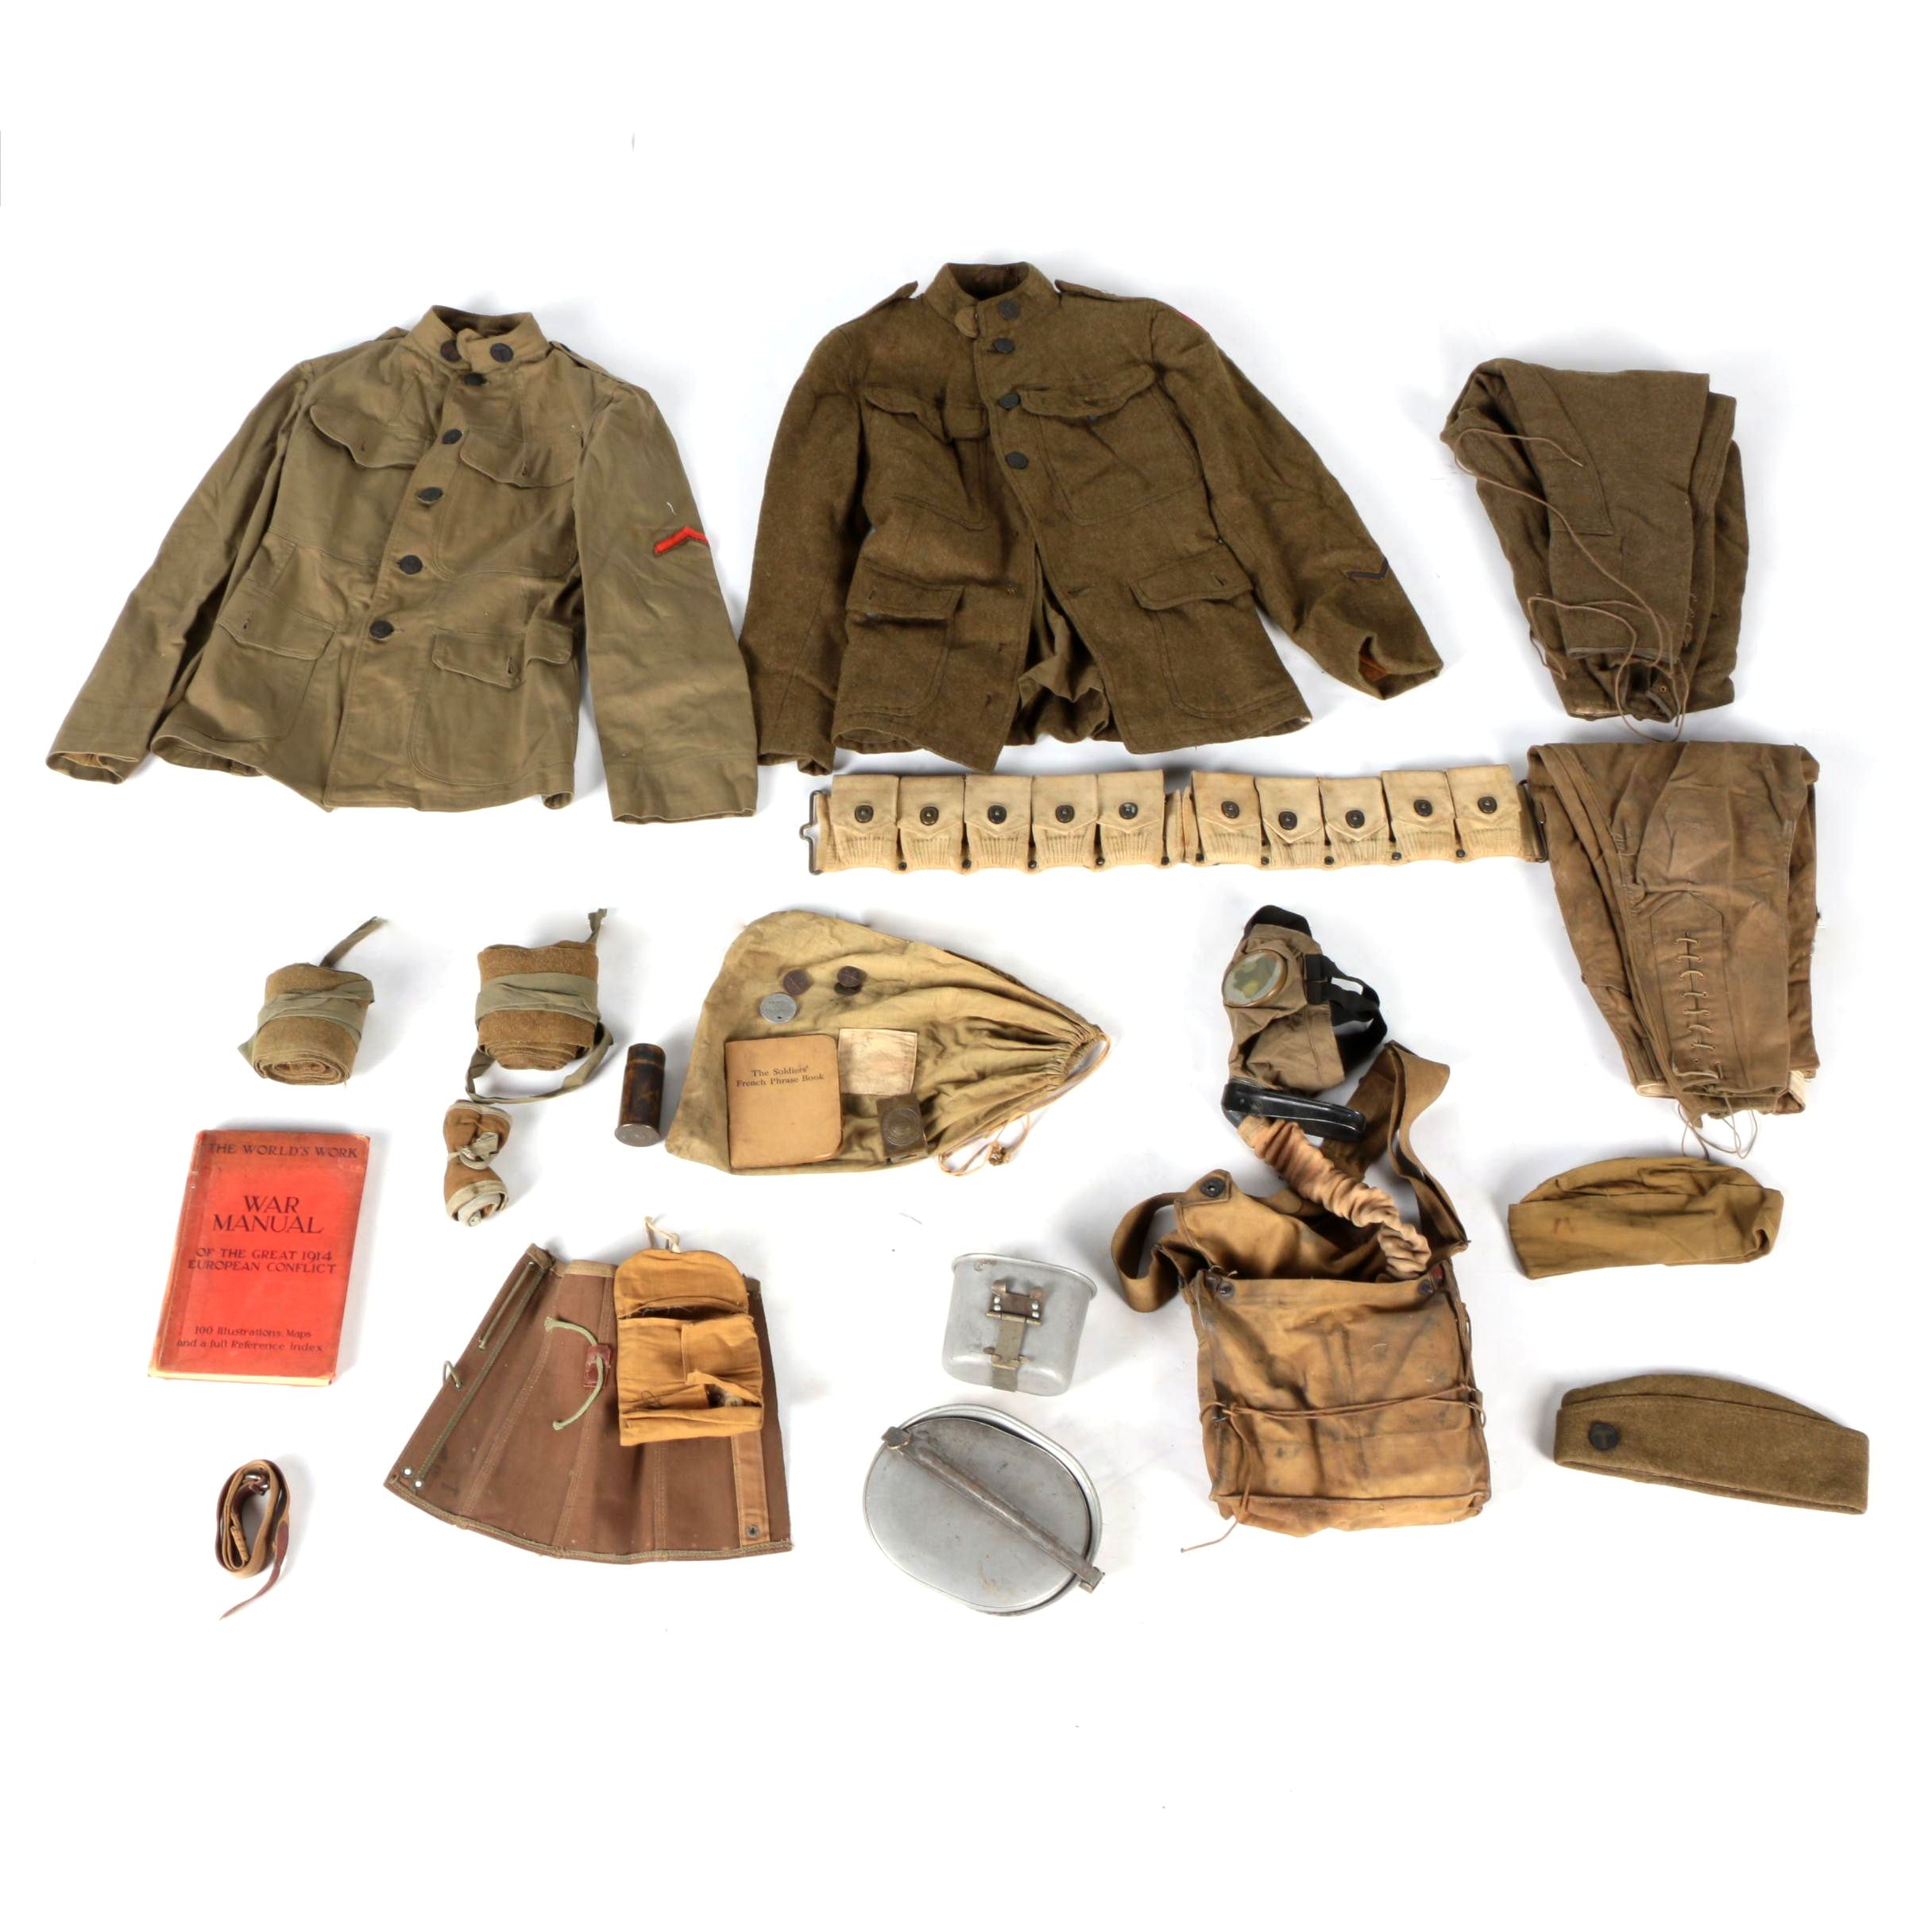 Antique and Vintage Military Uniforms and Equipment Including WWI Gas Mask